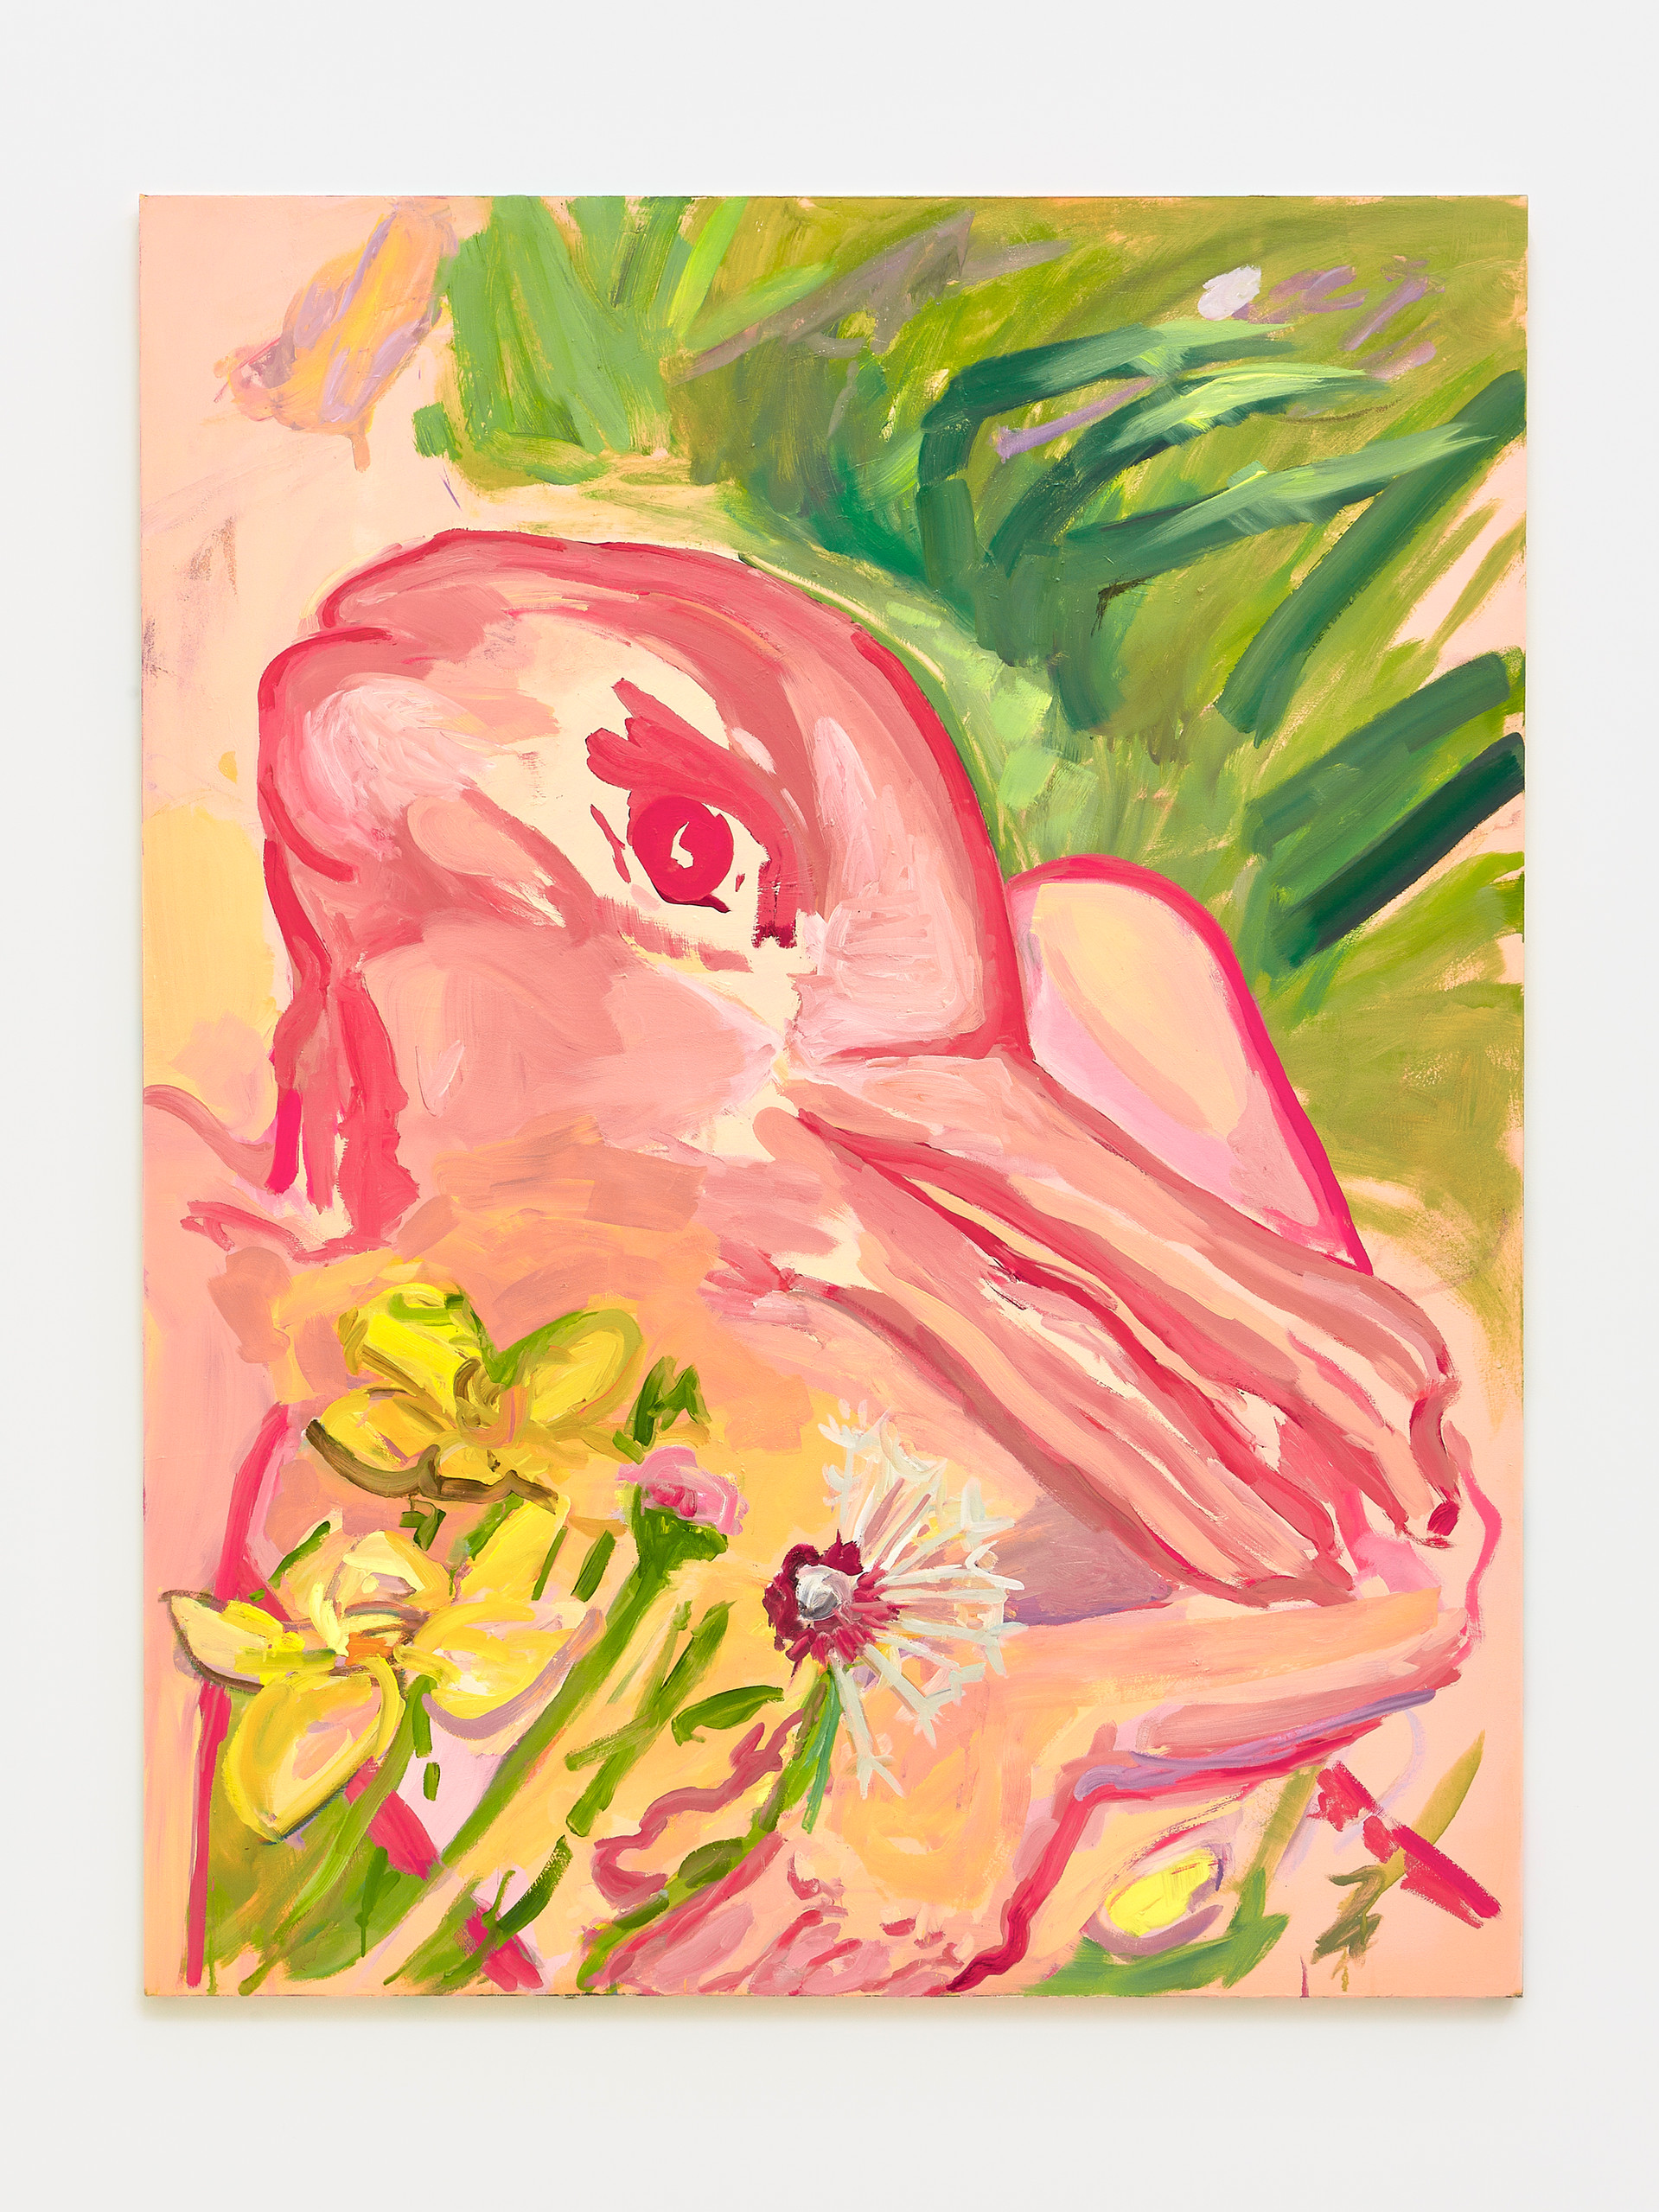 Duck and Rabbit with Dandelion, 2019  Oil on canvas   78 x 60 inches